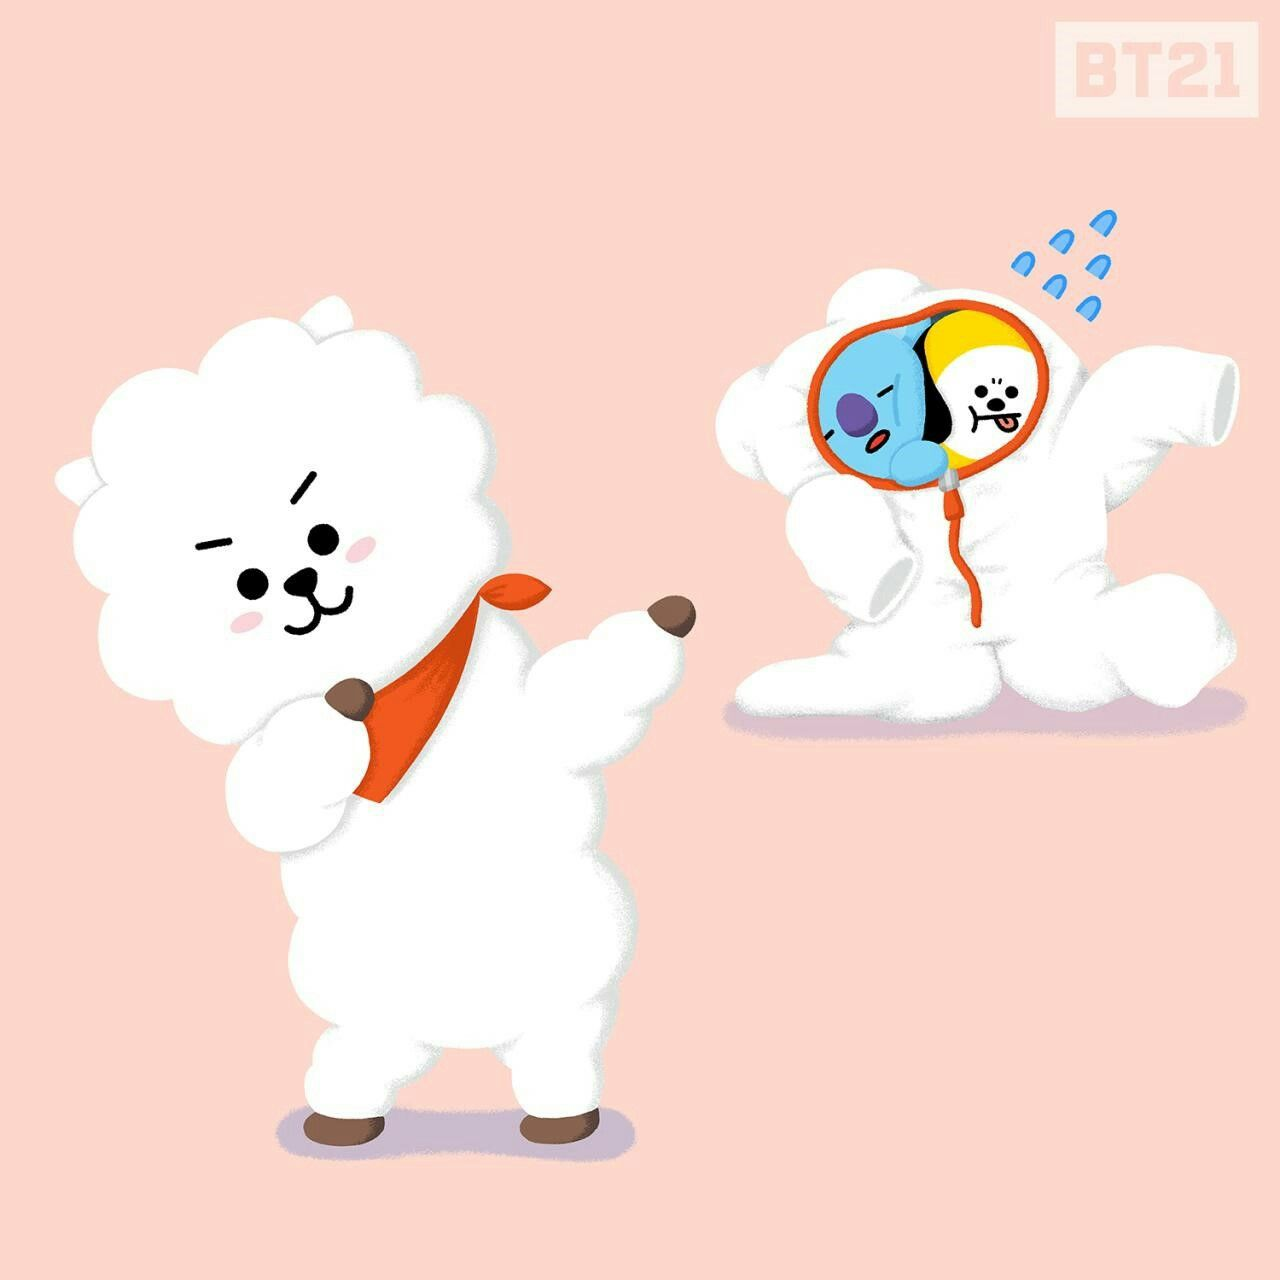 Bt21 wallpaper  bt21  wallpaper  chimmy  tata  cooky  RJ  mang  shooky   koya  van ed64d572ffc3